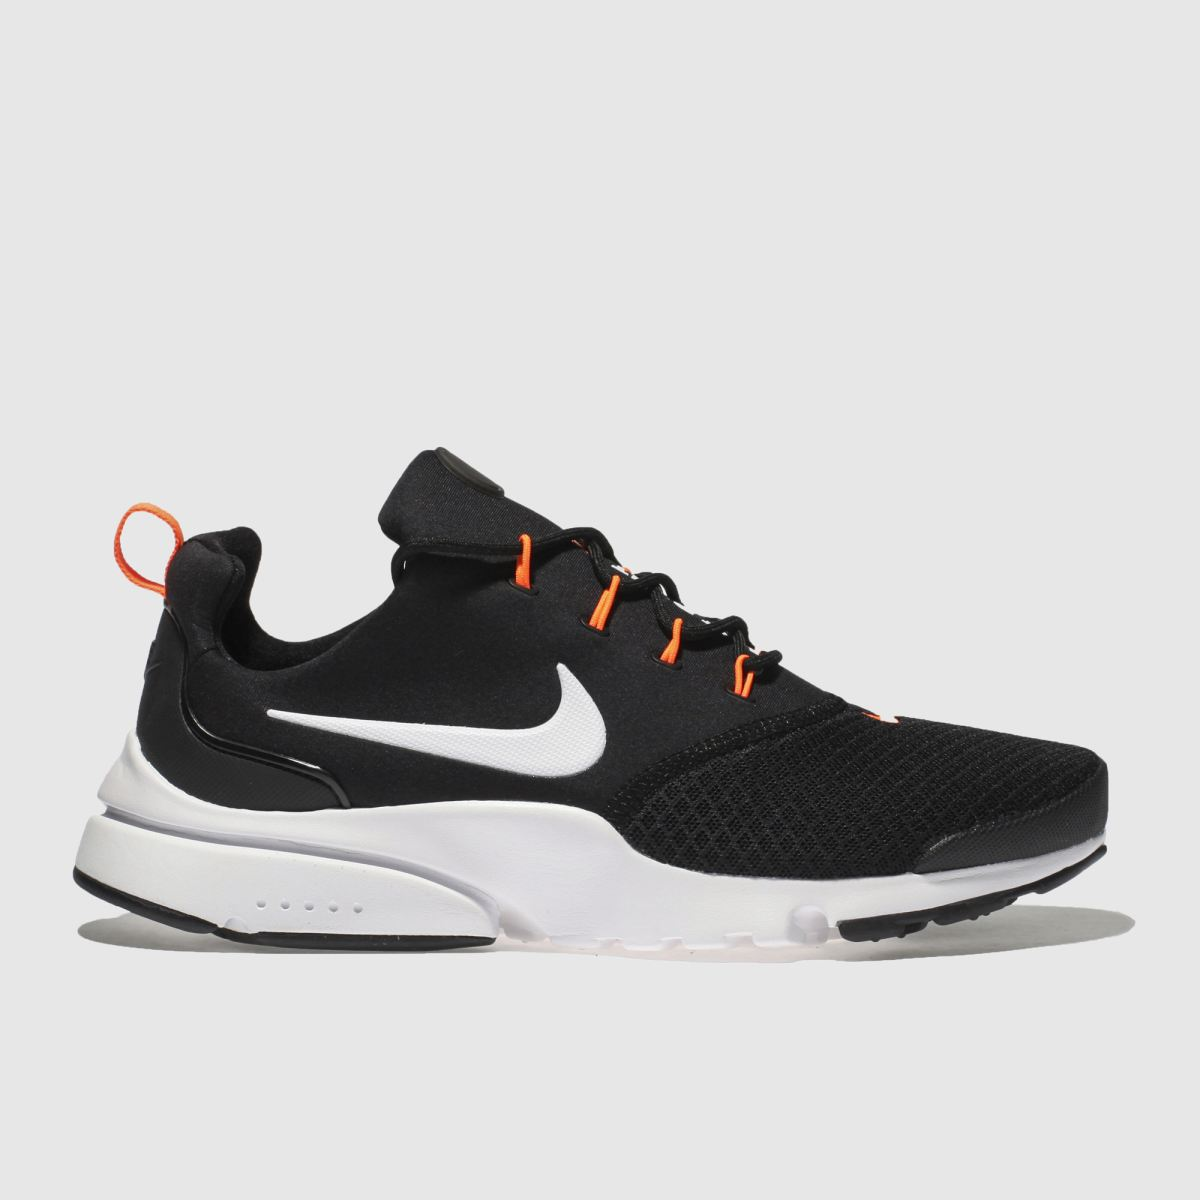 Nike Black & White Presto Fly Jdi Trainers